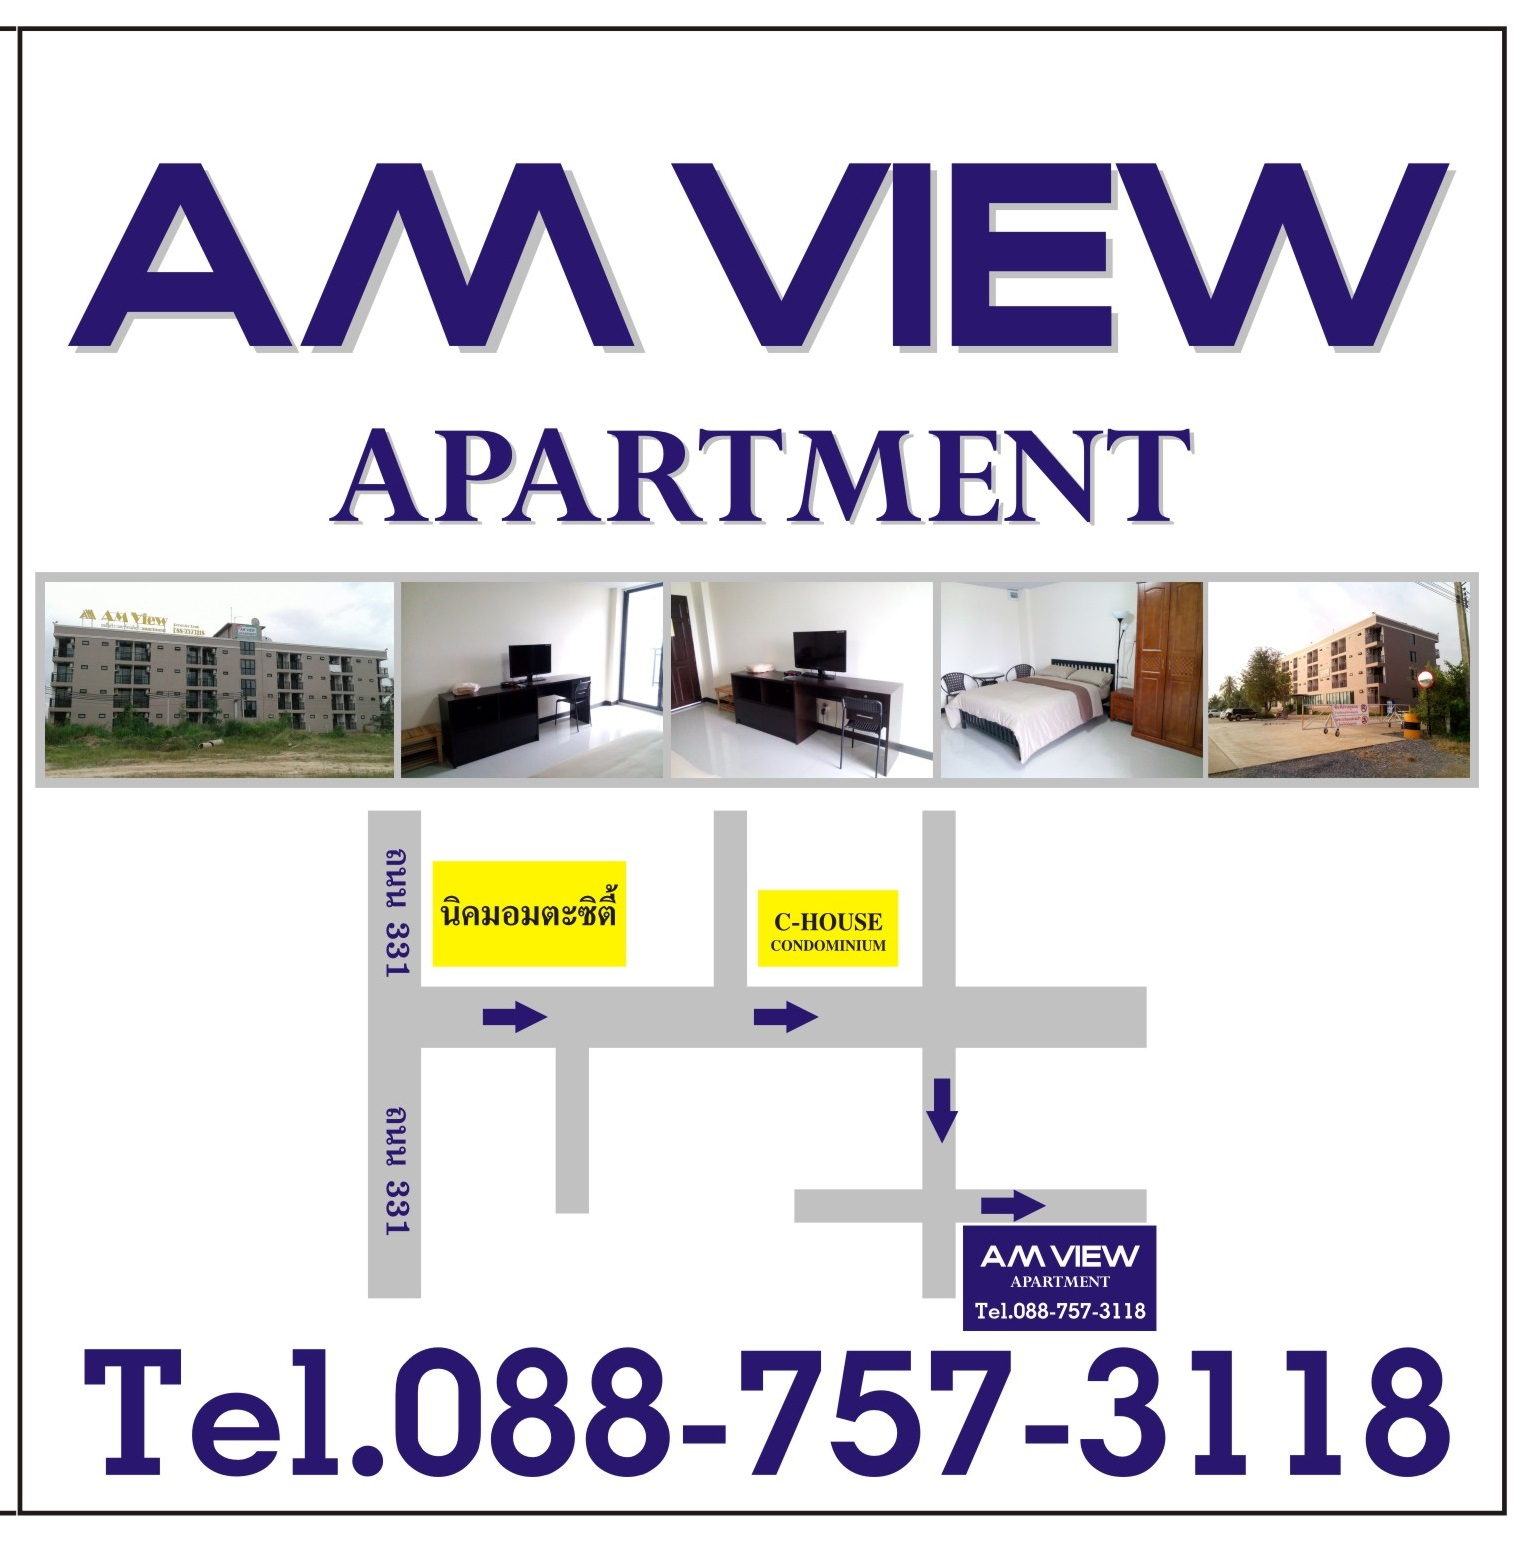 Amview Apartment 0887573118